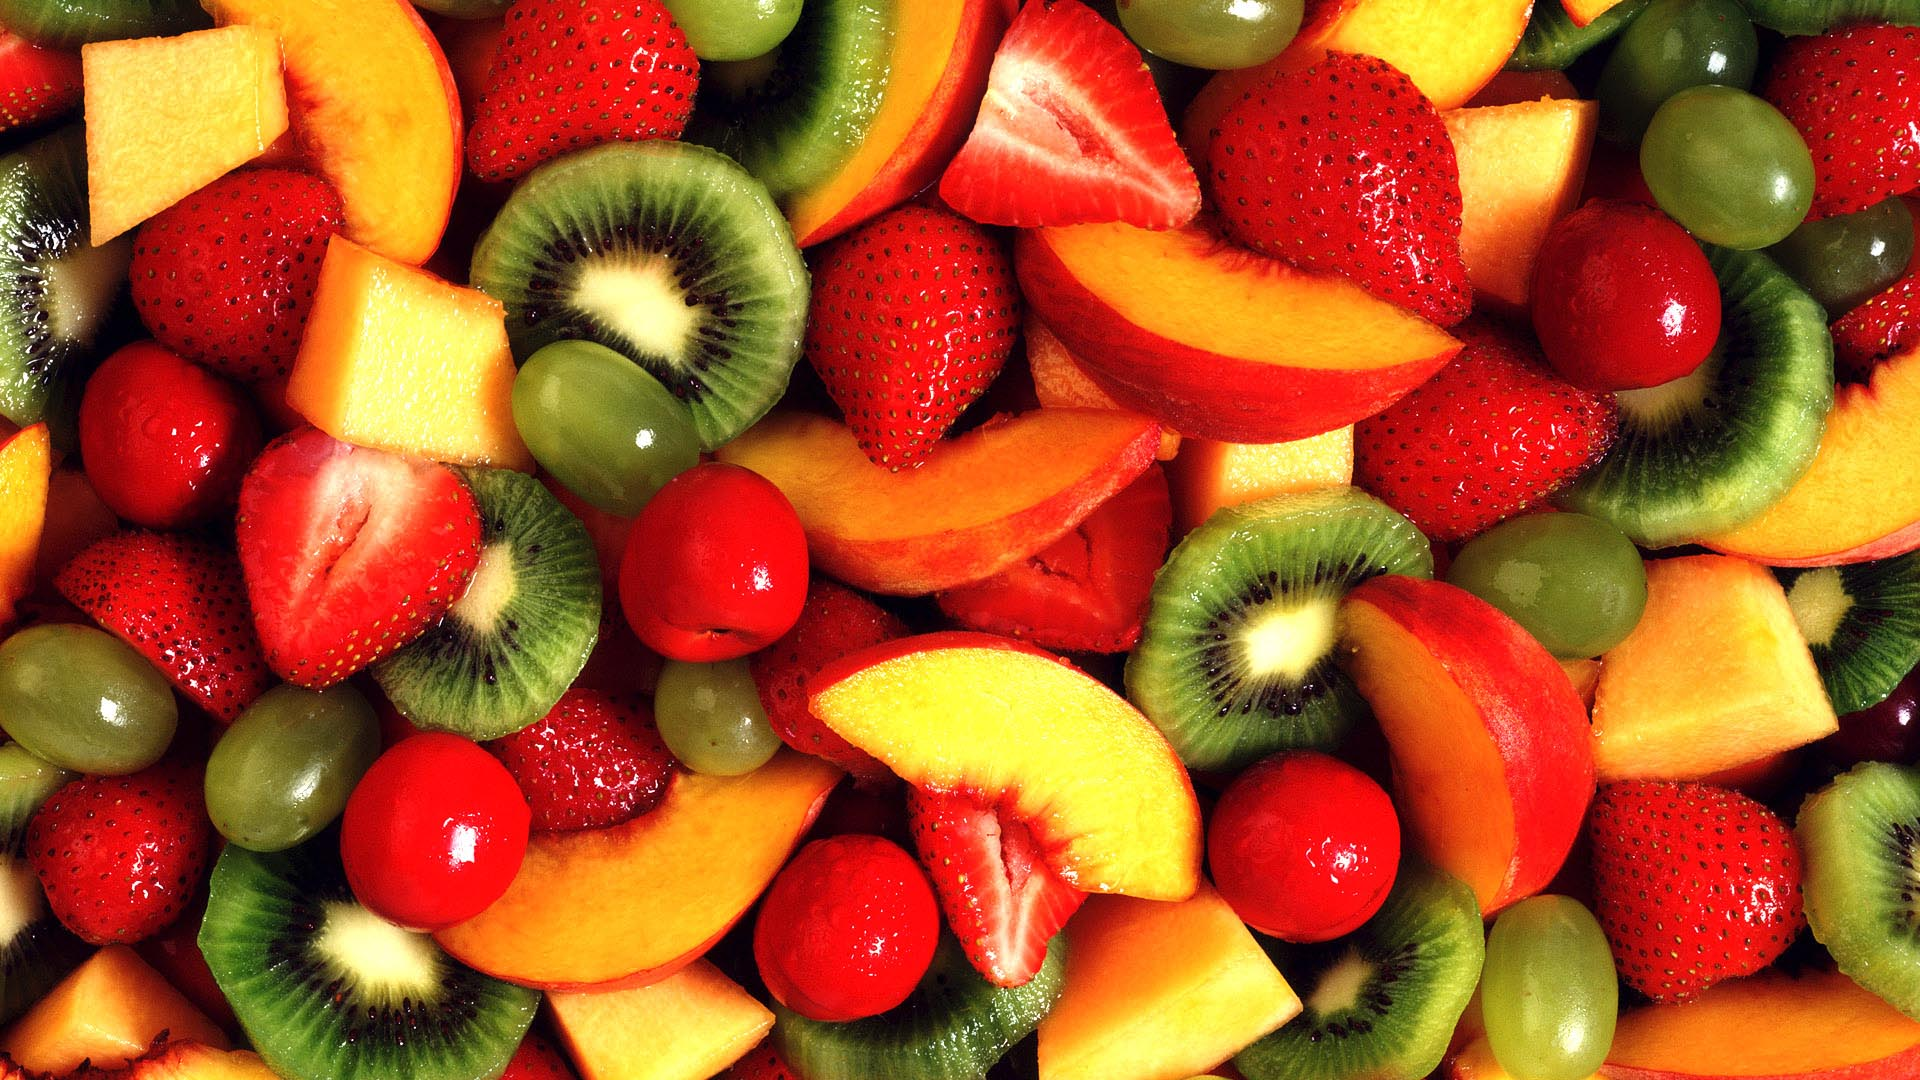 Full hd fruits wallpaper - 15 Outstanding Hd Fruit Wallpapers